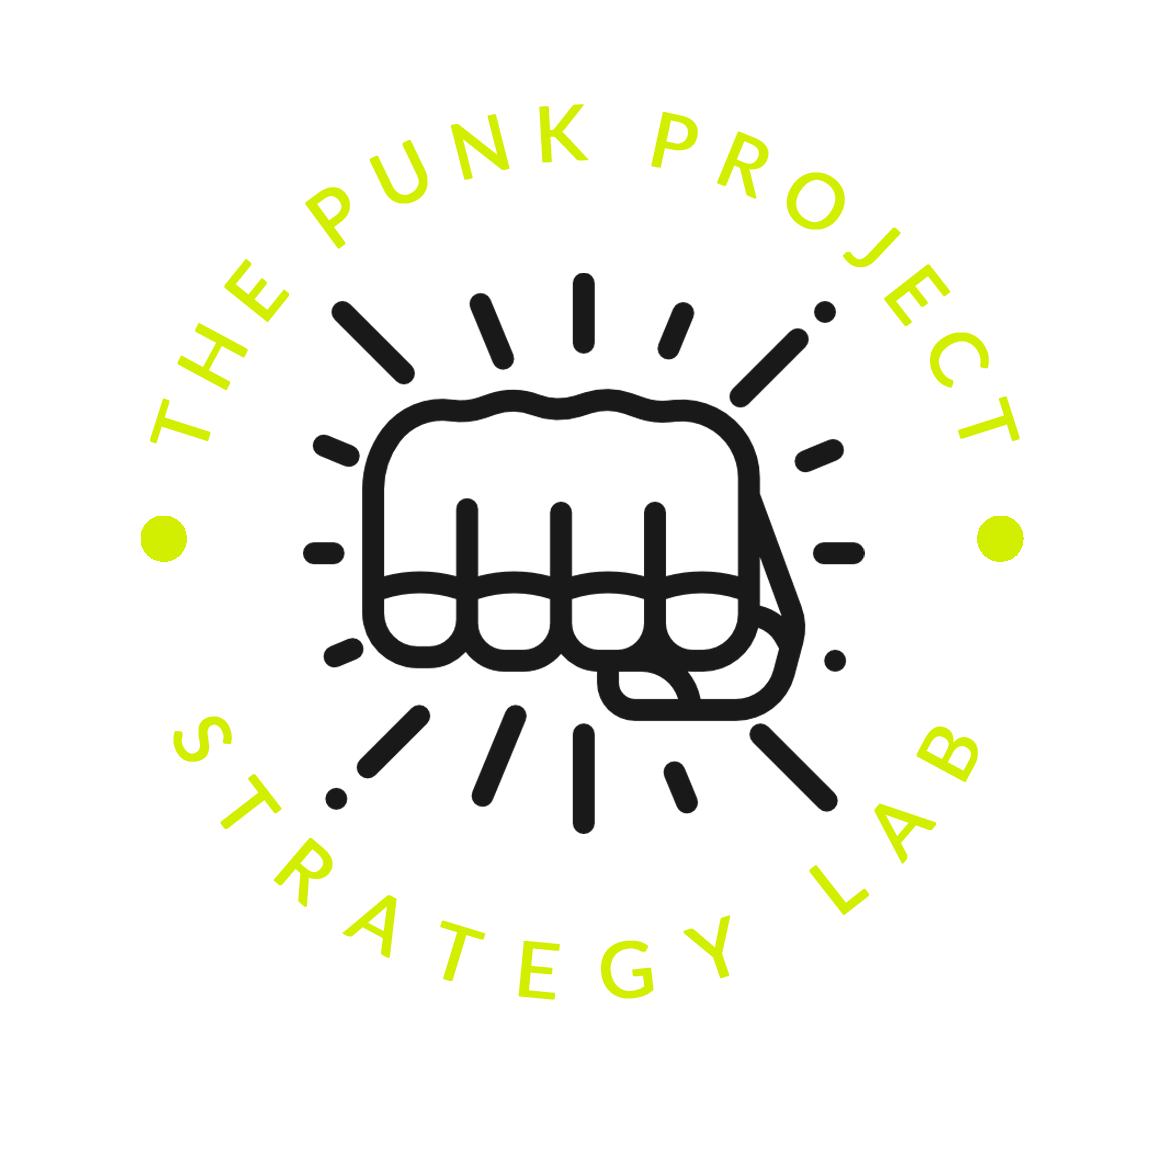 Phase Two: - Make it Spiky - Make it stand out, make it stick.This is a fast-moving rebellion round of revising and strategy to establish expert industry positioning and authority. Together, we design a plan for your email marketing so we can further embed your brand and messaging into the psyche of your ideal clients so that when they think of your industry - you're the first person to come to mind.